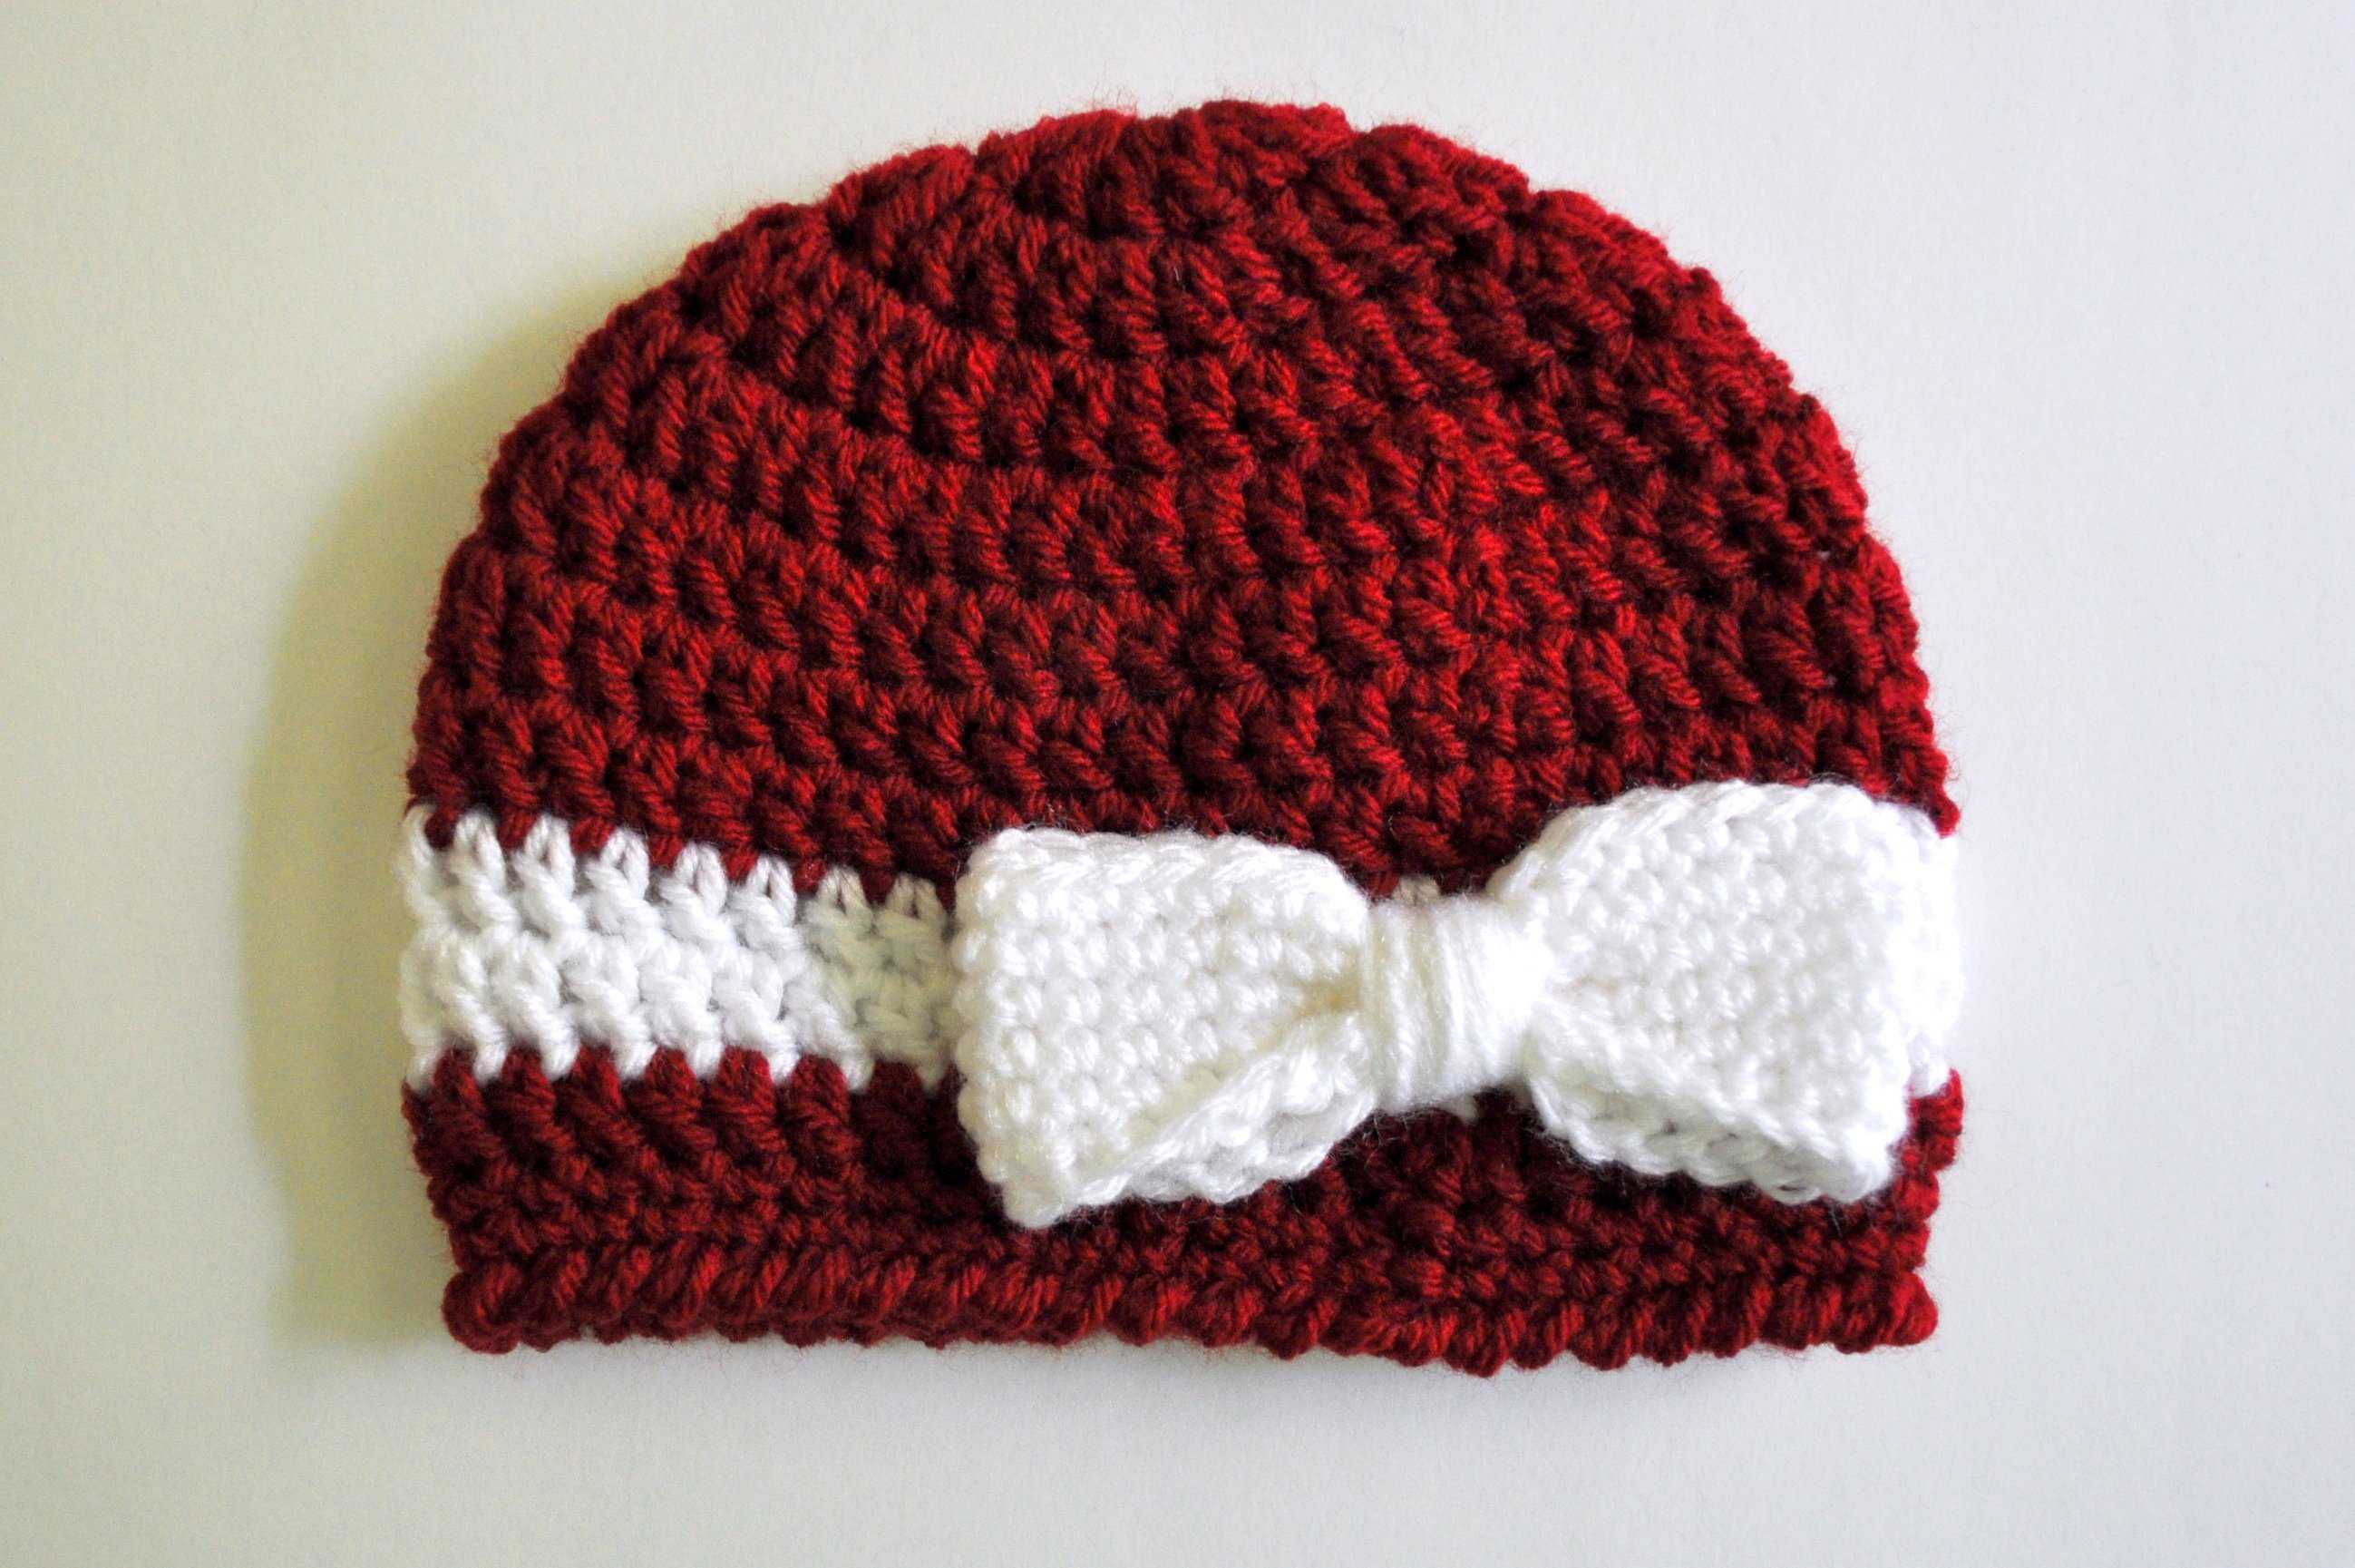 Crocheting Hats Patterns : 25 Easy Crochet Bow Patterns Guide Patterns